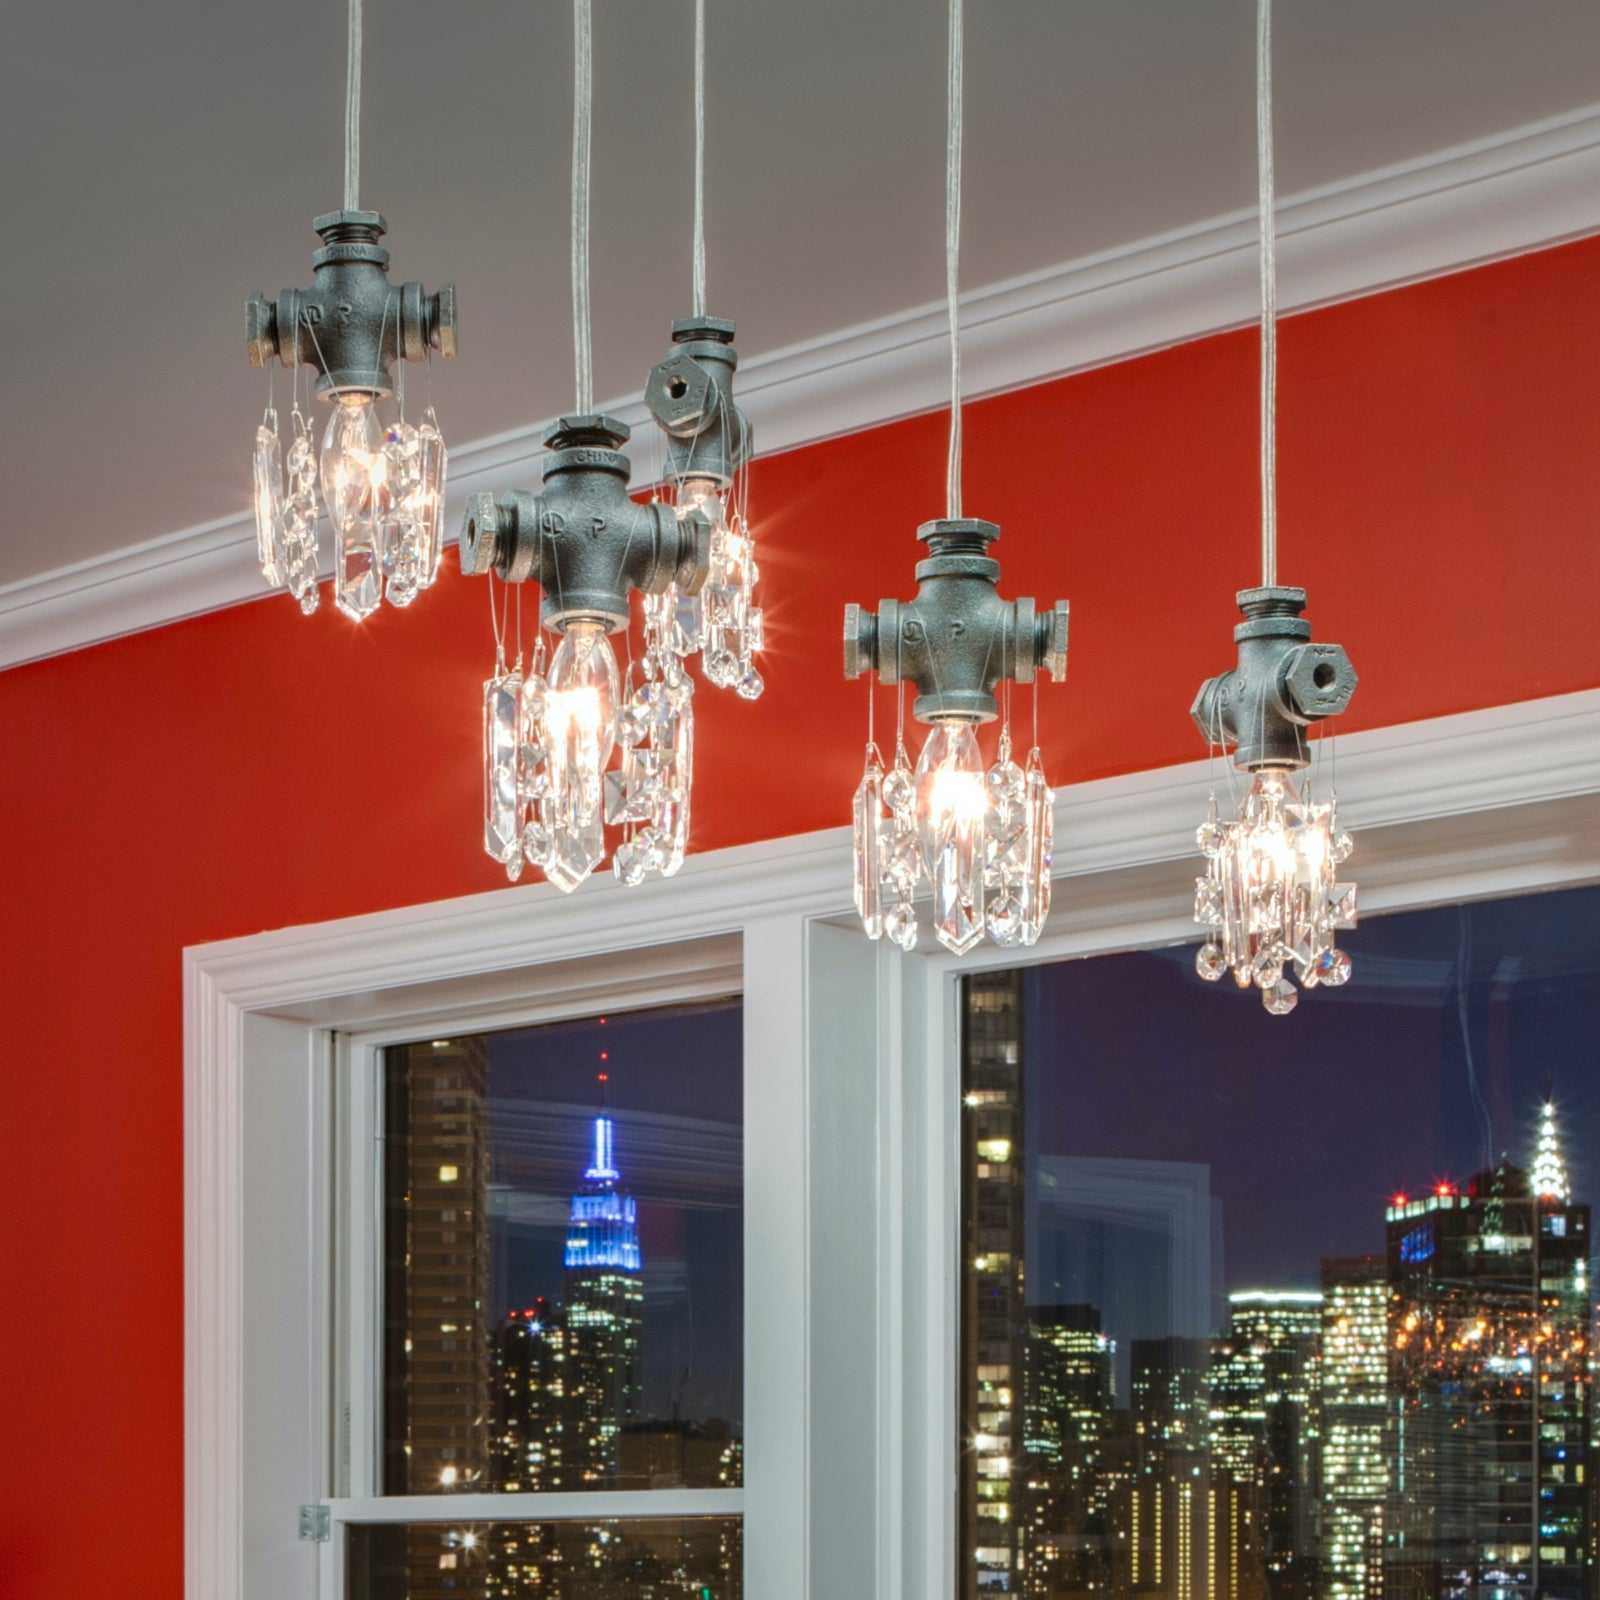 A cluster of Tribeca Single-Bulb Chandelier Pendants